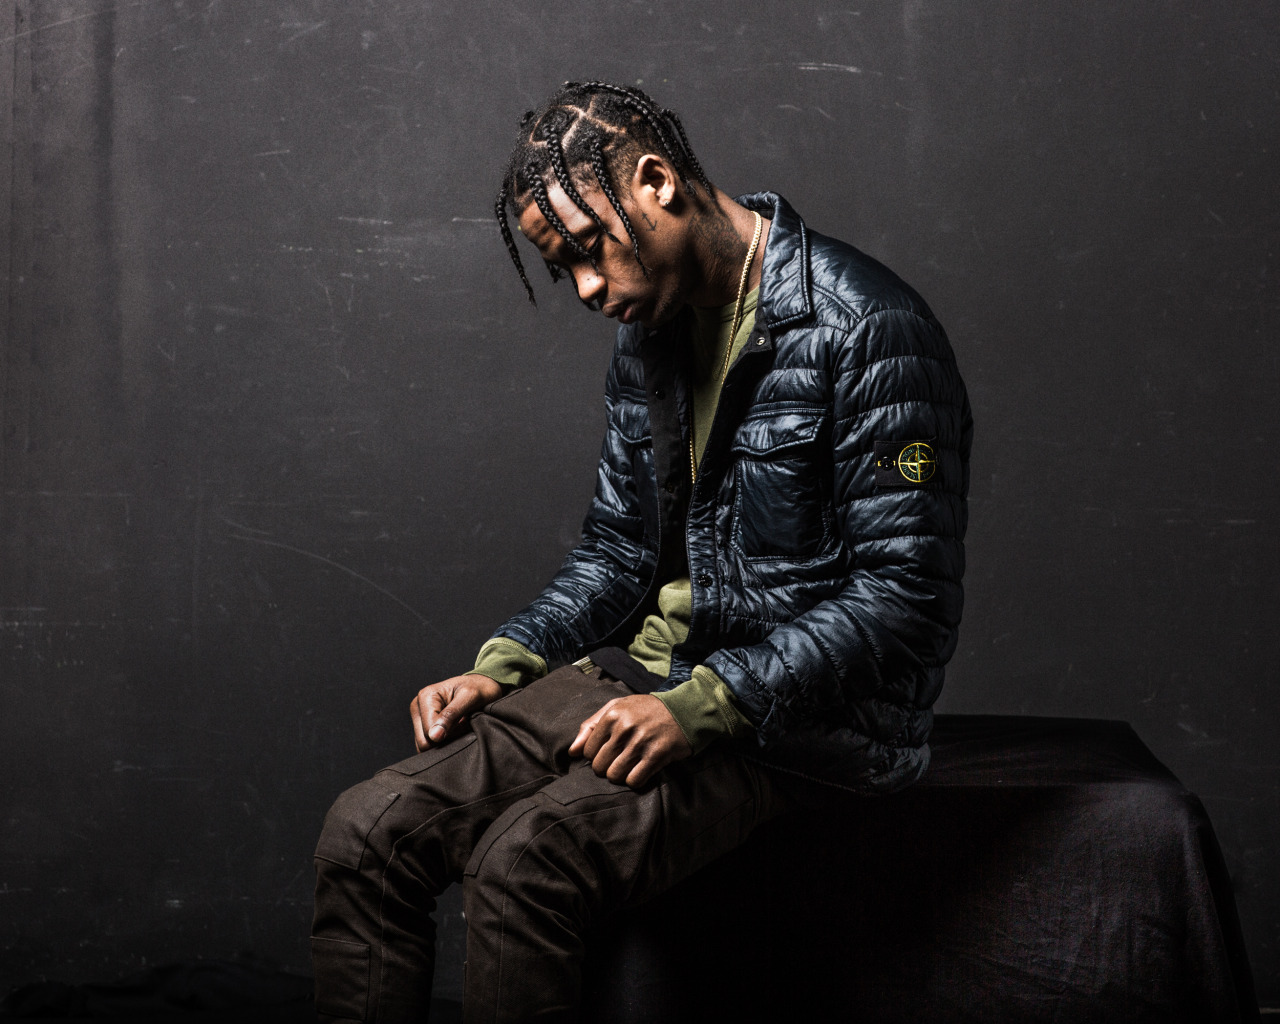 Travi$ Scott looking hot as he sits down in a dark area while wearing a puffer jacket.jpg